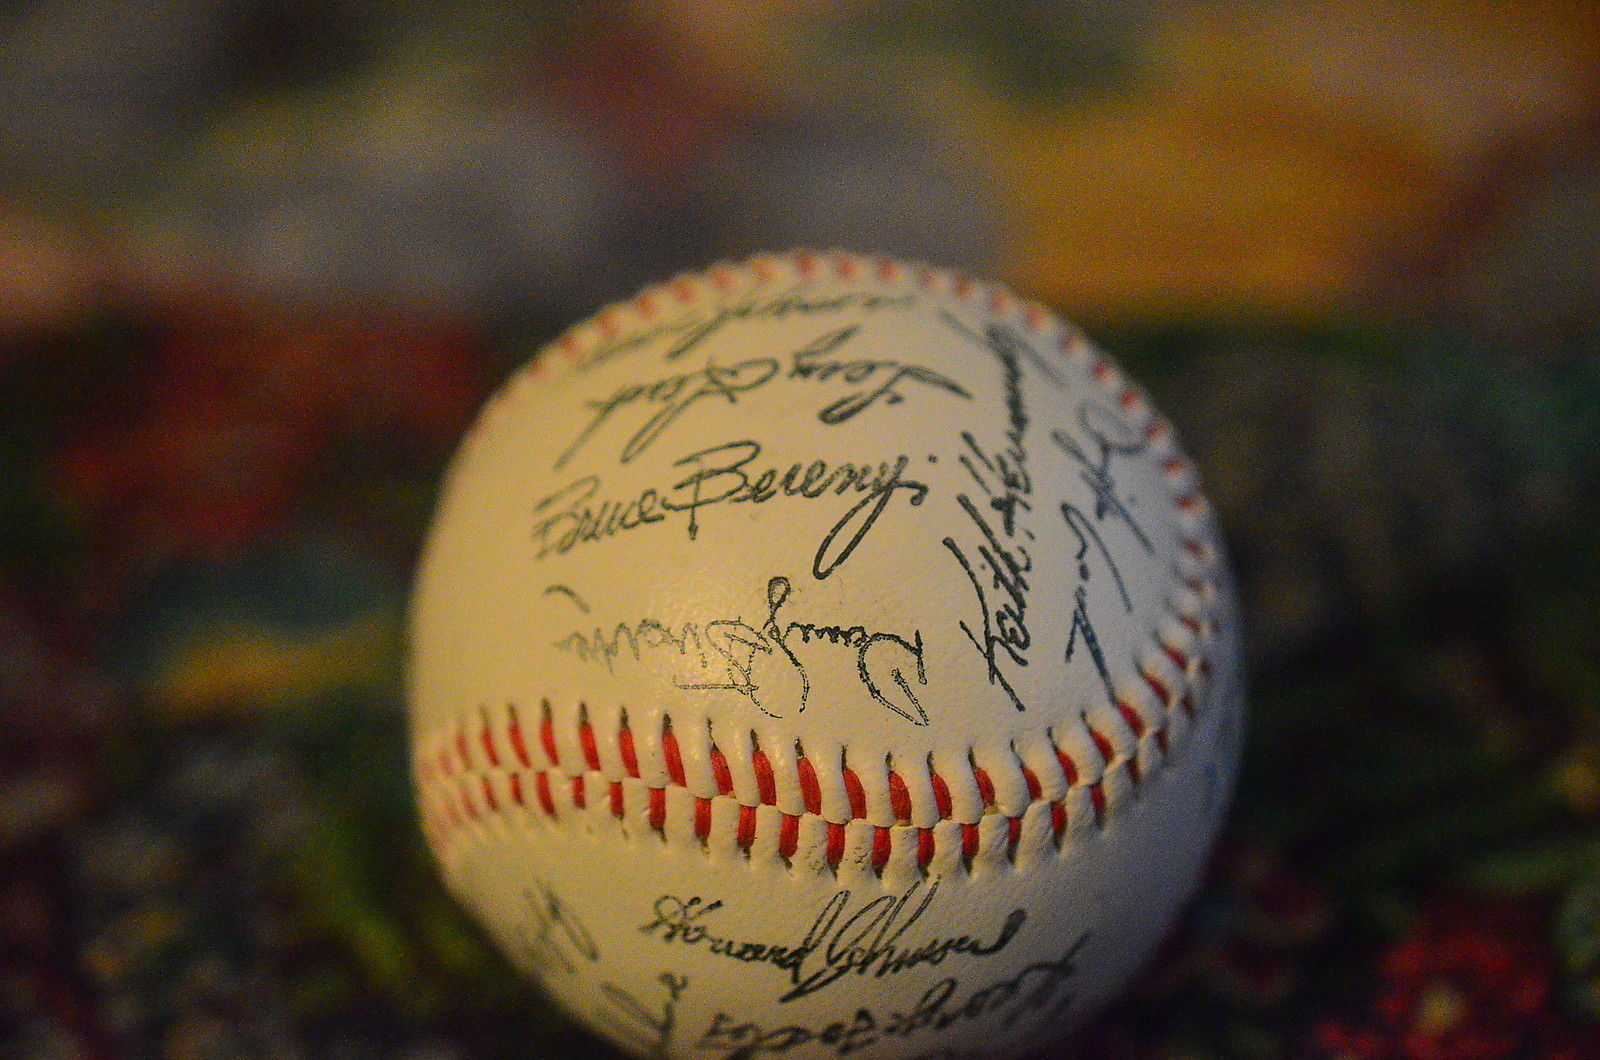 1986 NEW YORK METS BASEBALL with facsimile signatures of the team